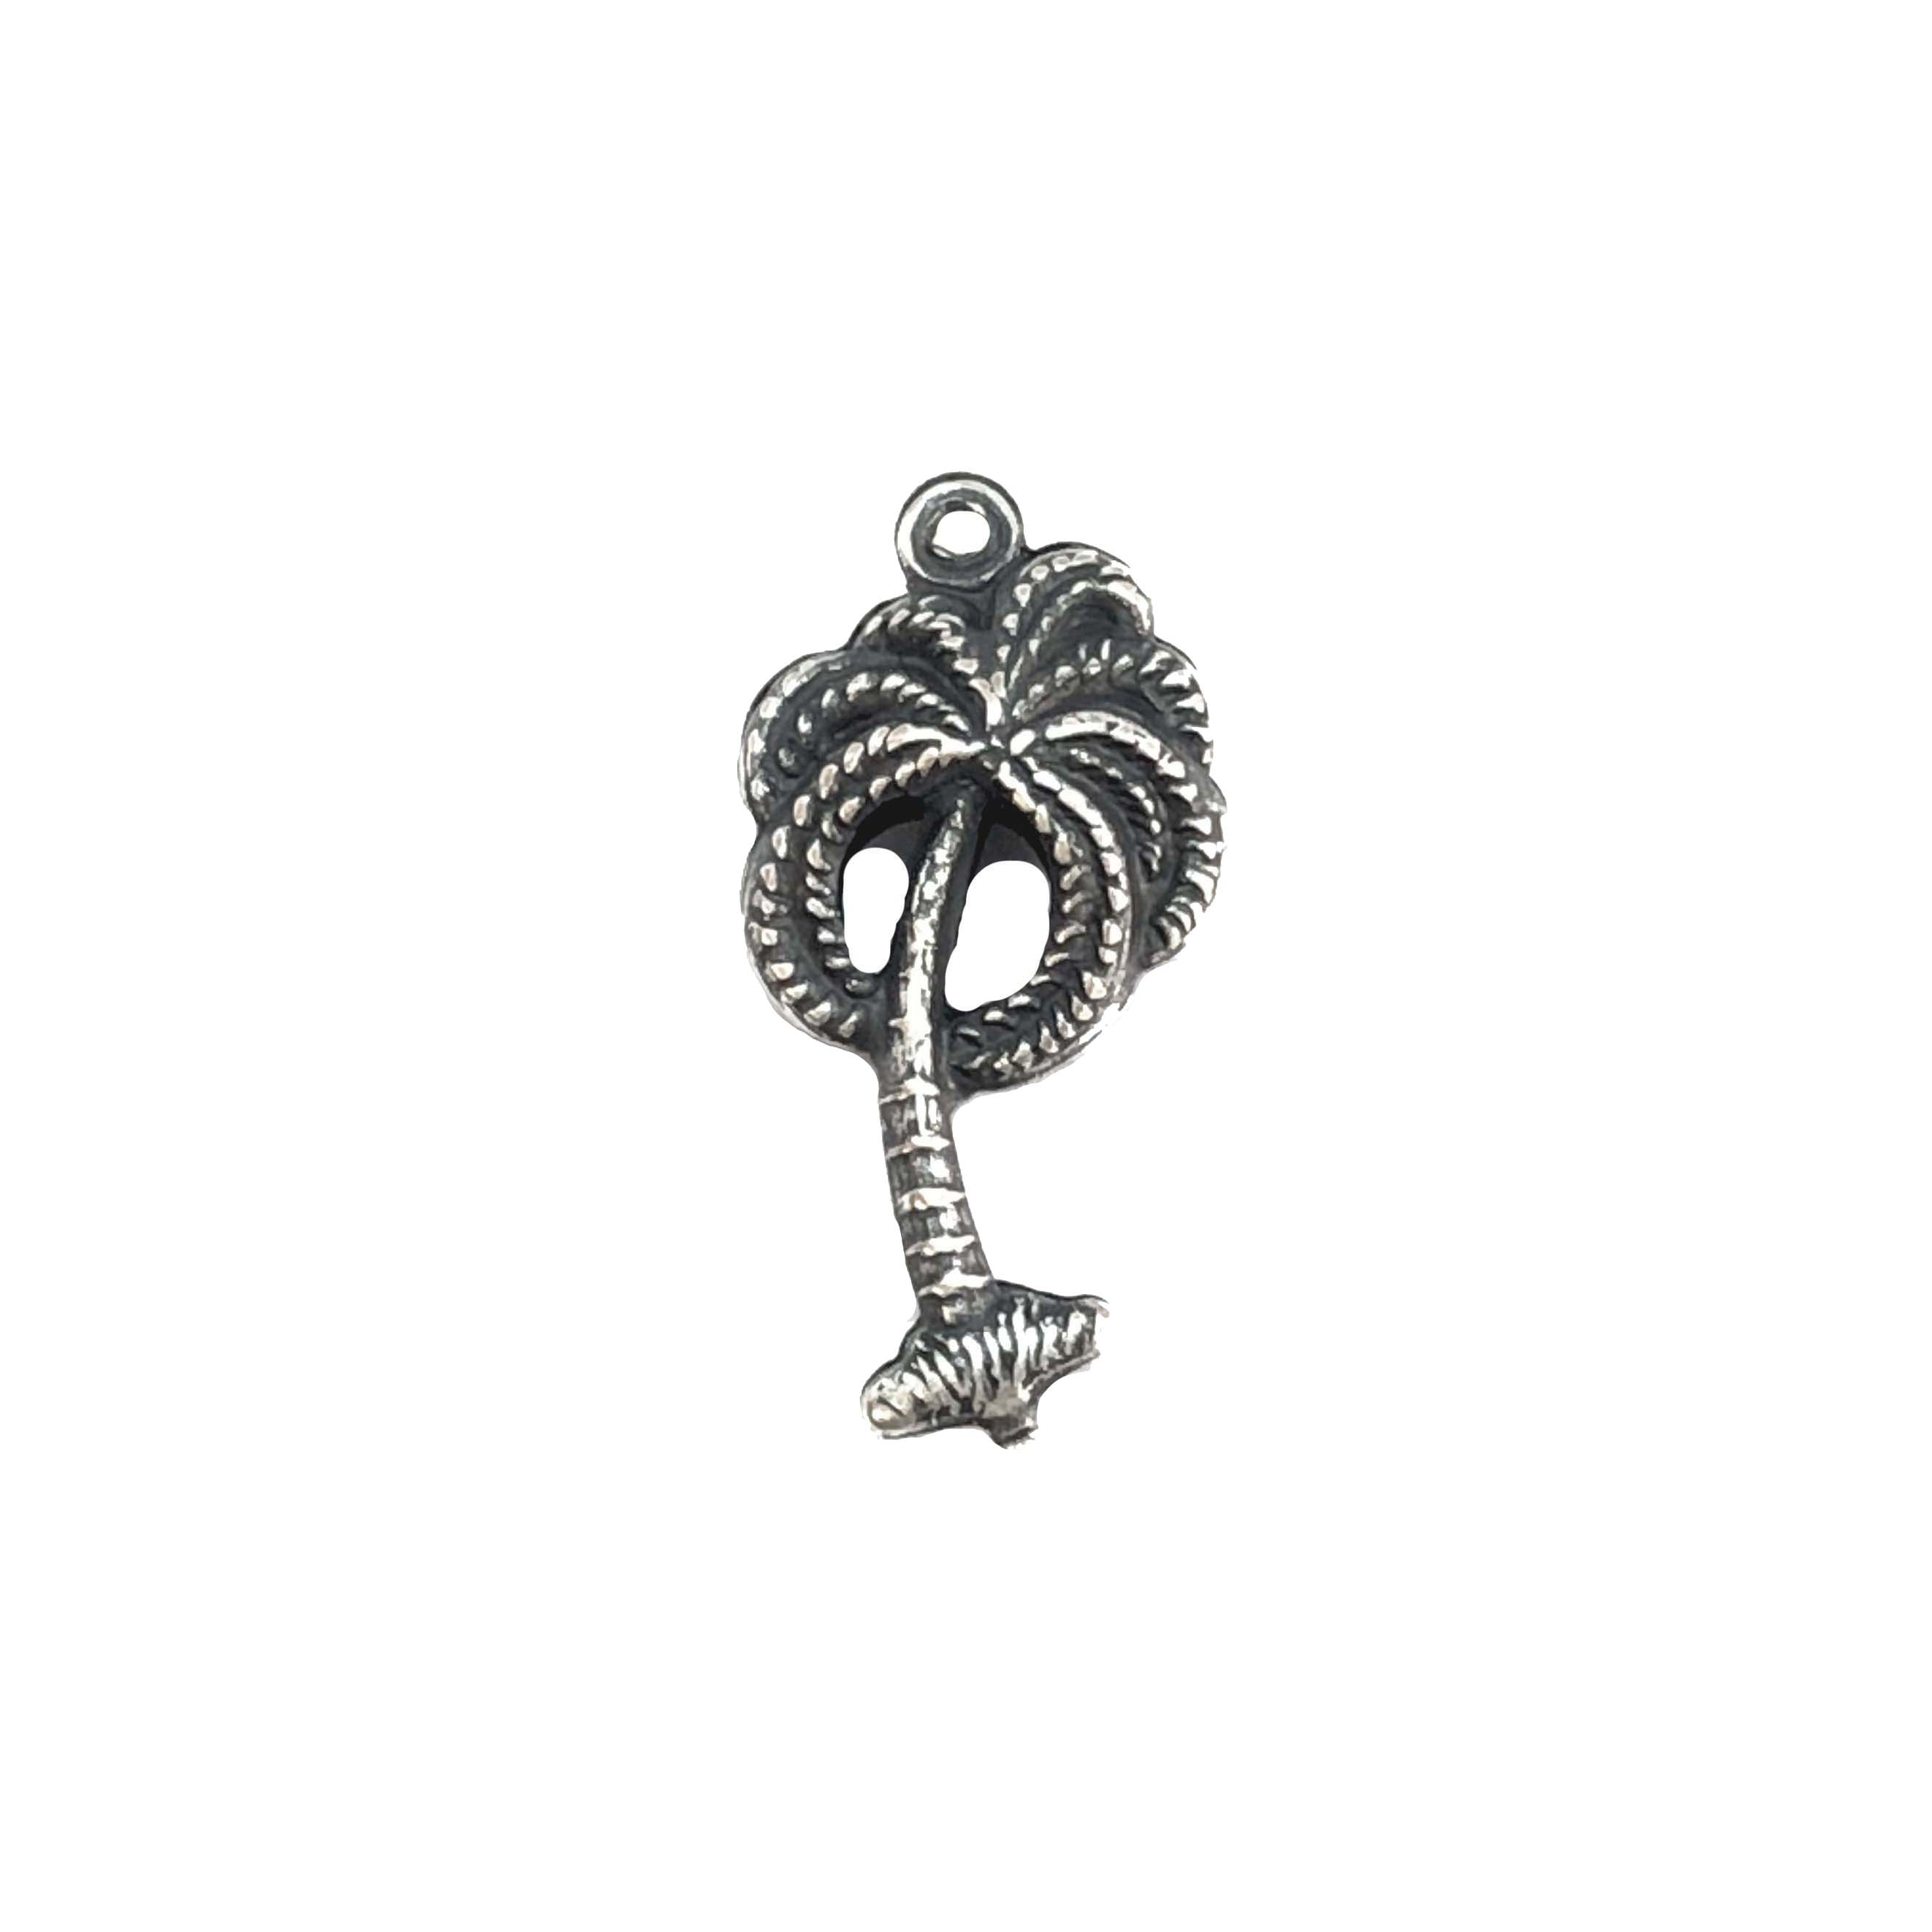 brass charm, palm tree charms, 06908, silverware silverplate, jewelry parts, vintage jewelry supplies, beach jewelry, US made jewelry, nickel free jewelry, B'sue Boutiques, jewelry making